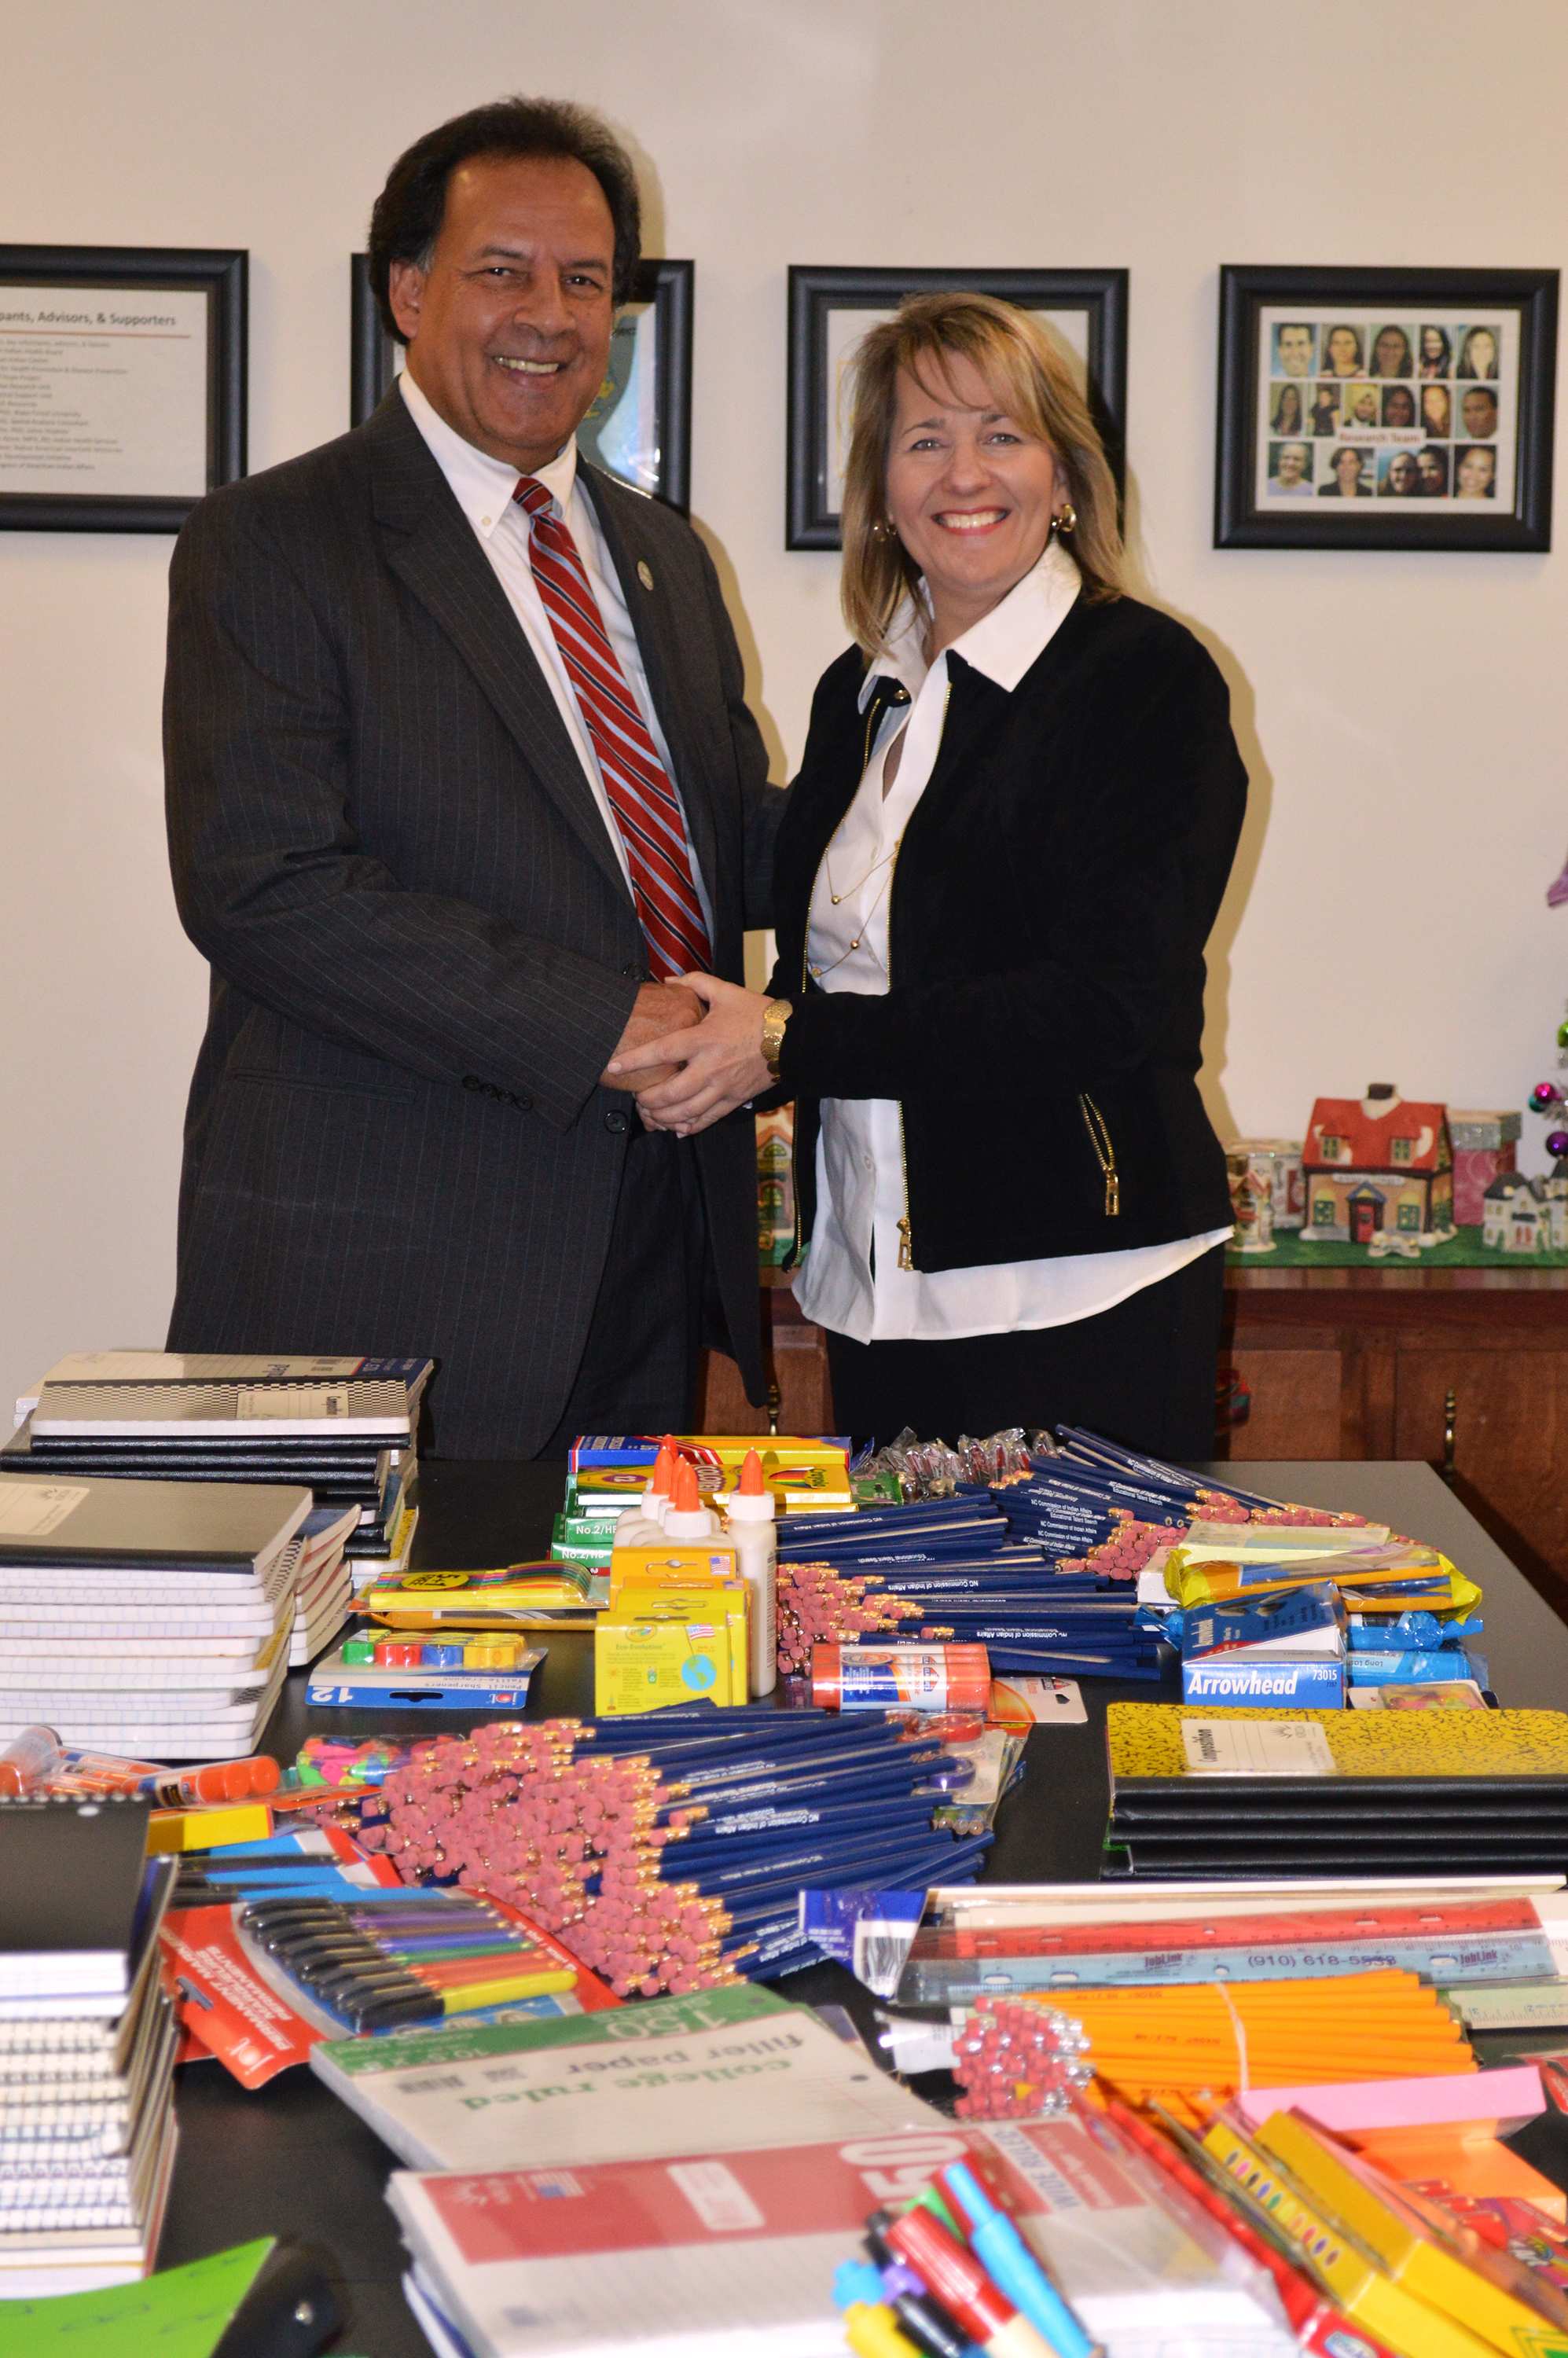 Greg Richardson, Executive Director of the Commission of Indian Affairs, poses with Paula Woodhouse, OSHR's Interim Director